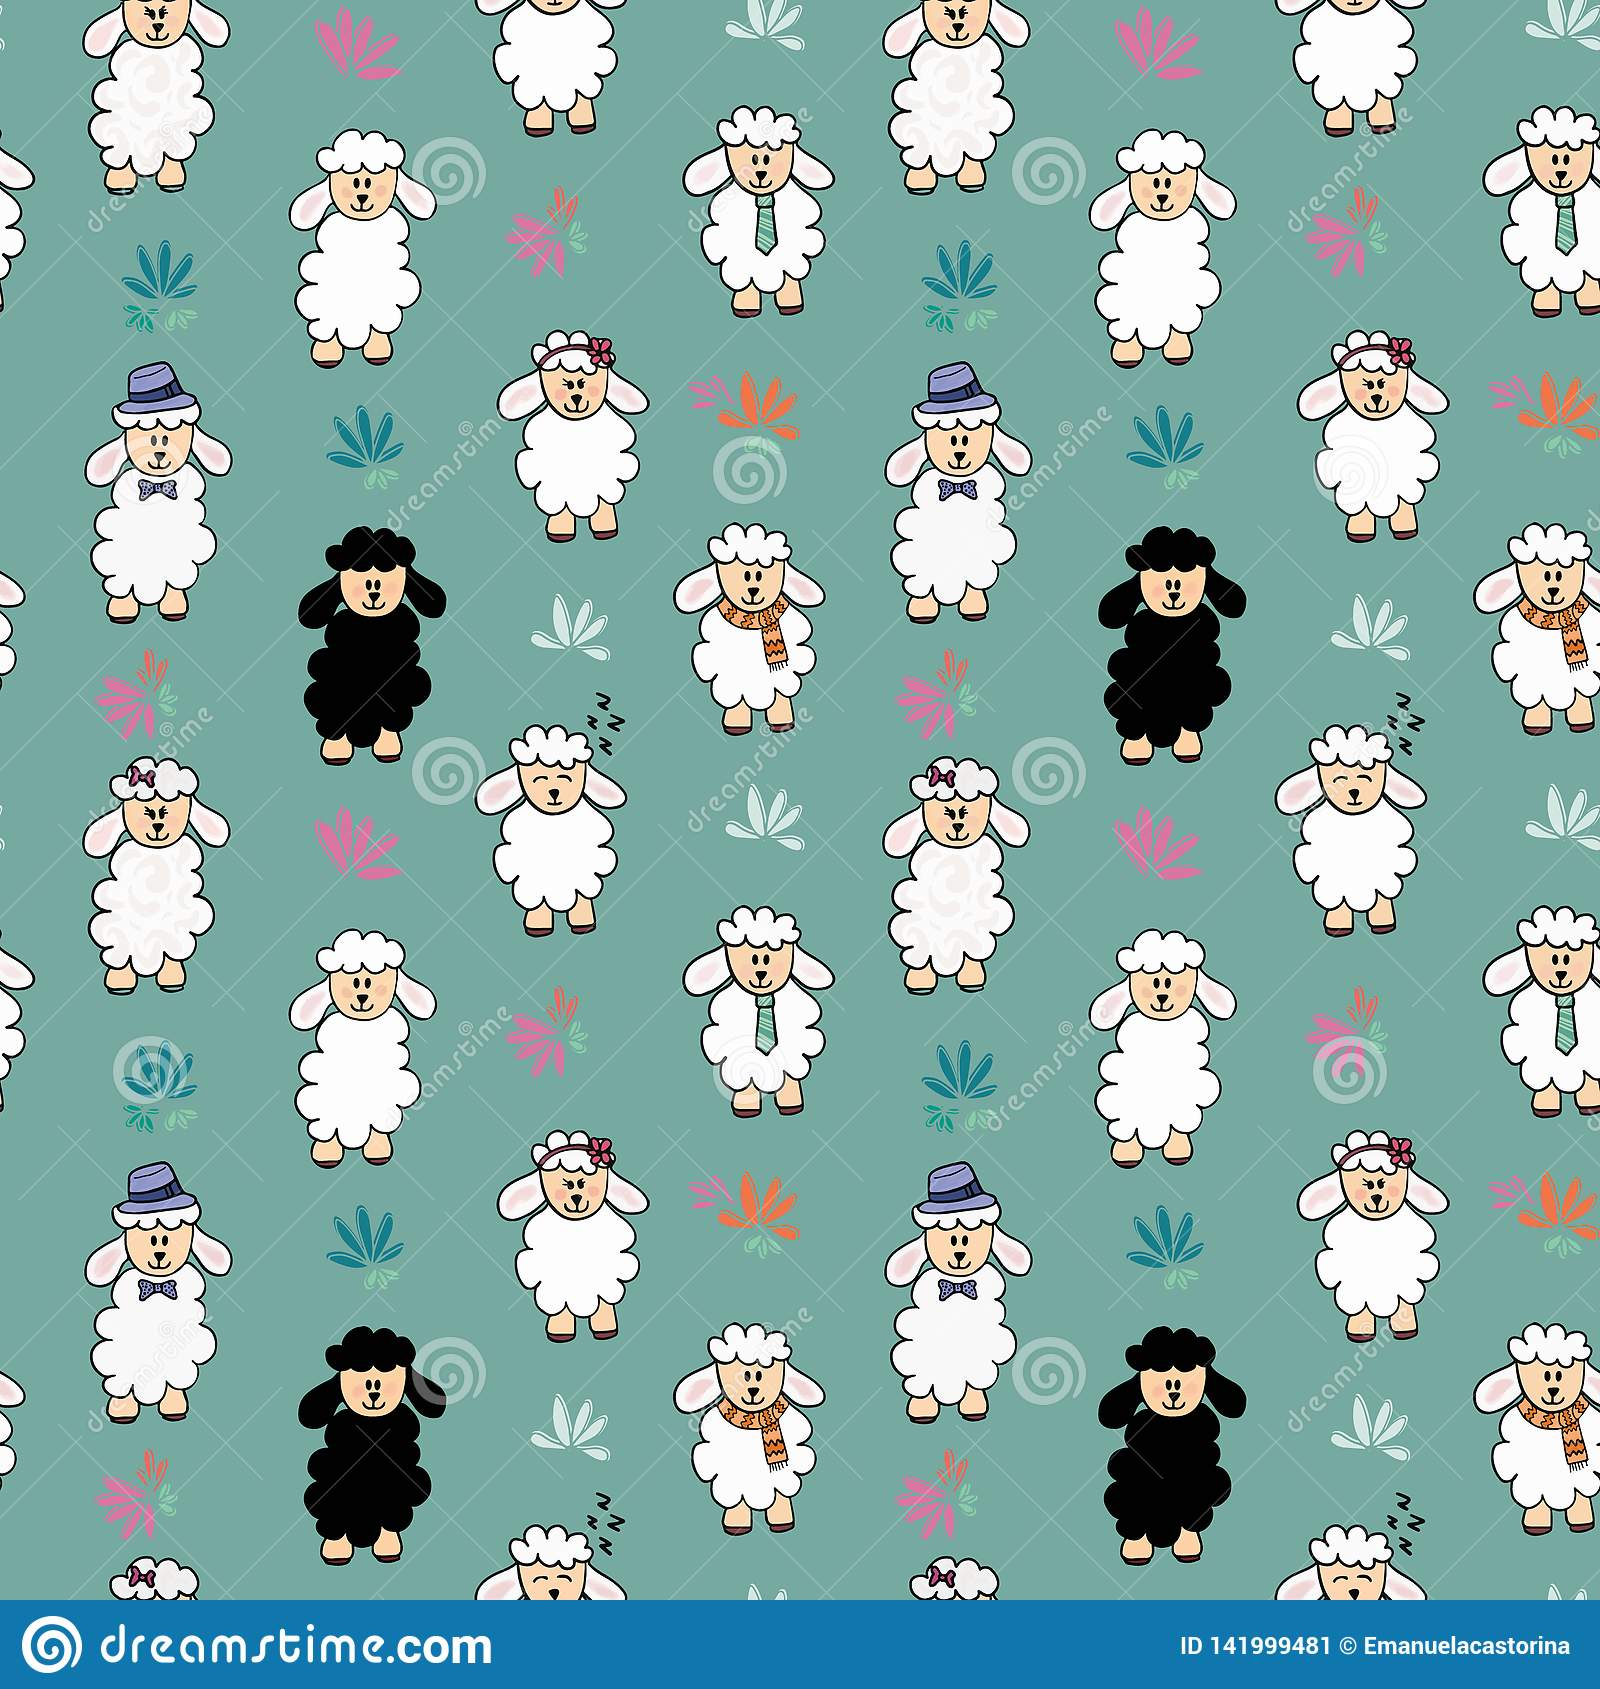 Seamless vector funny sheep background pattern with flower. Sheep with different accessories